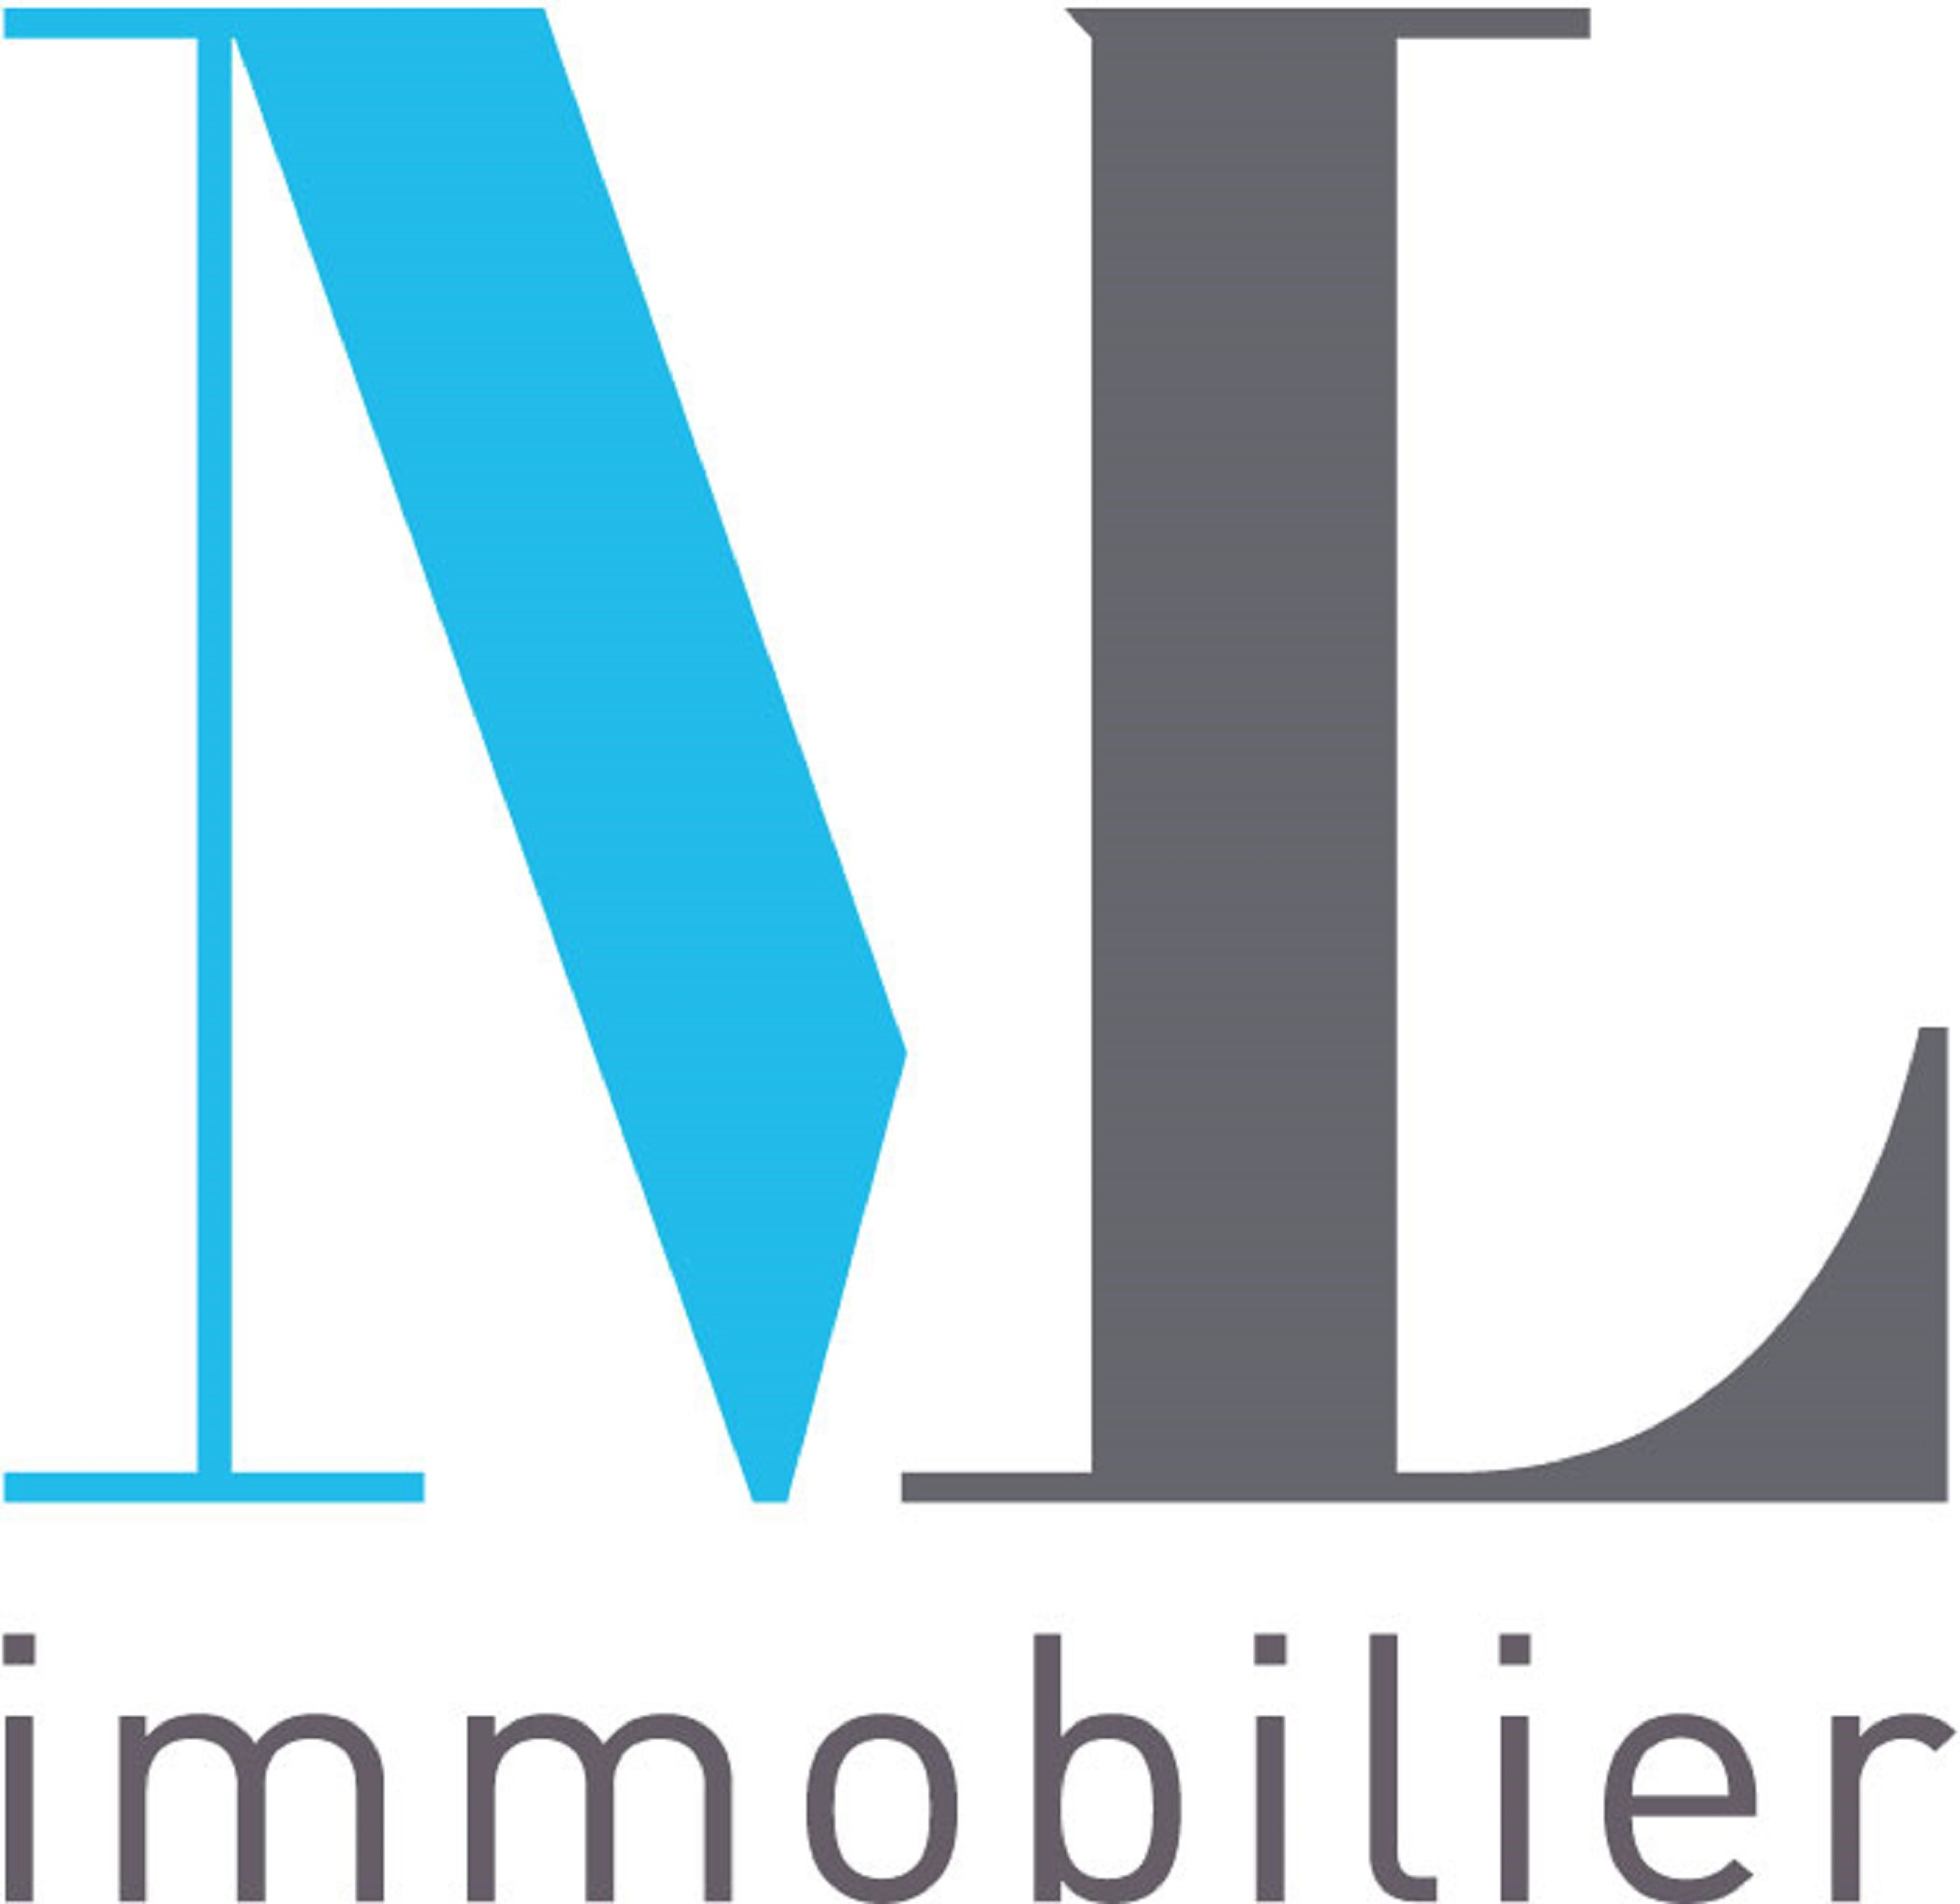 Michel leroux immobilier agence immobili re achat et for Achat agence immobiliere